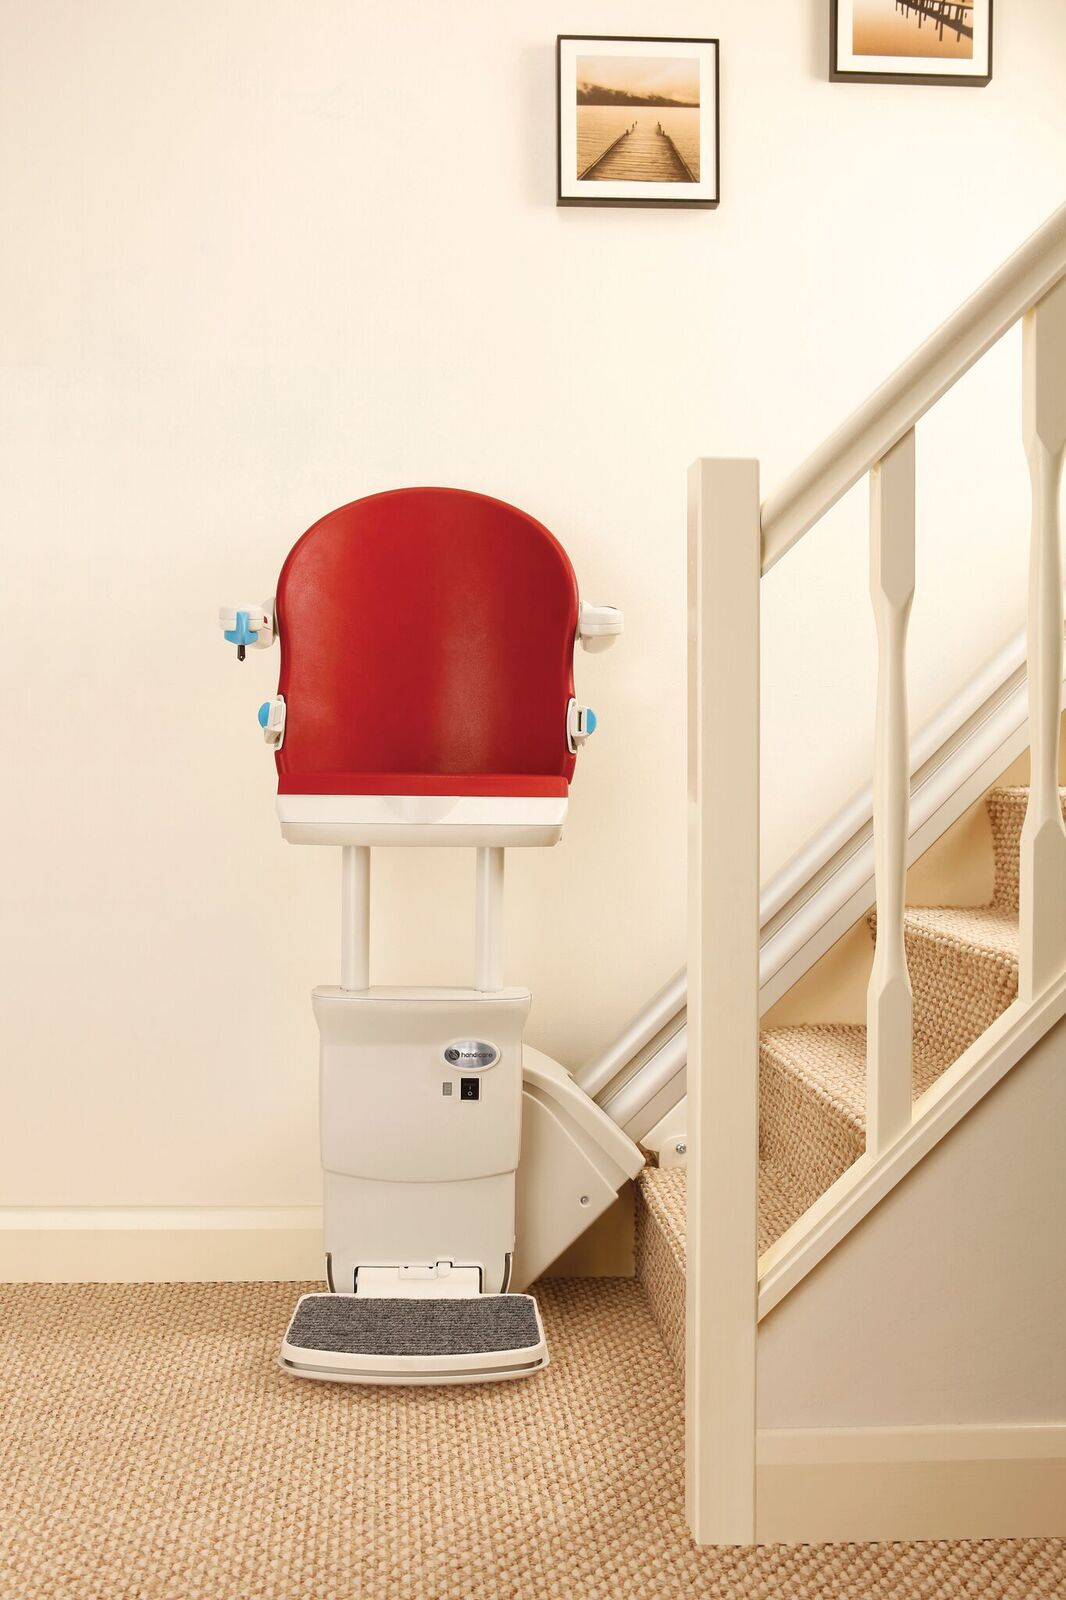 Pa Stairlifts, Peak Stairlifts, Handicare, York